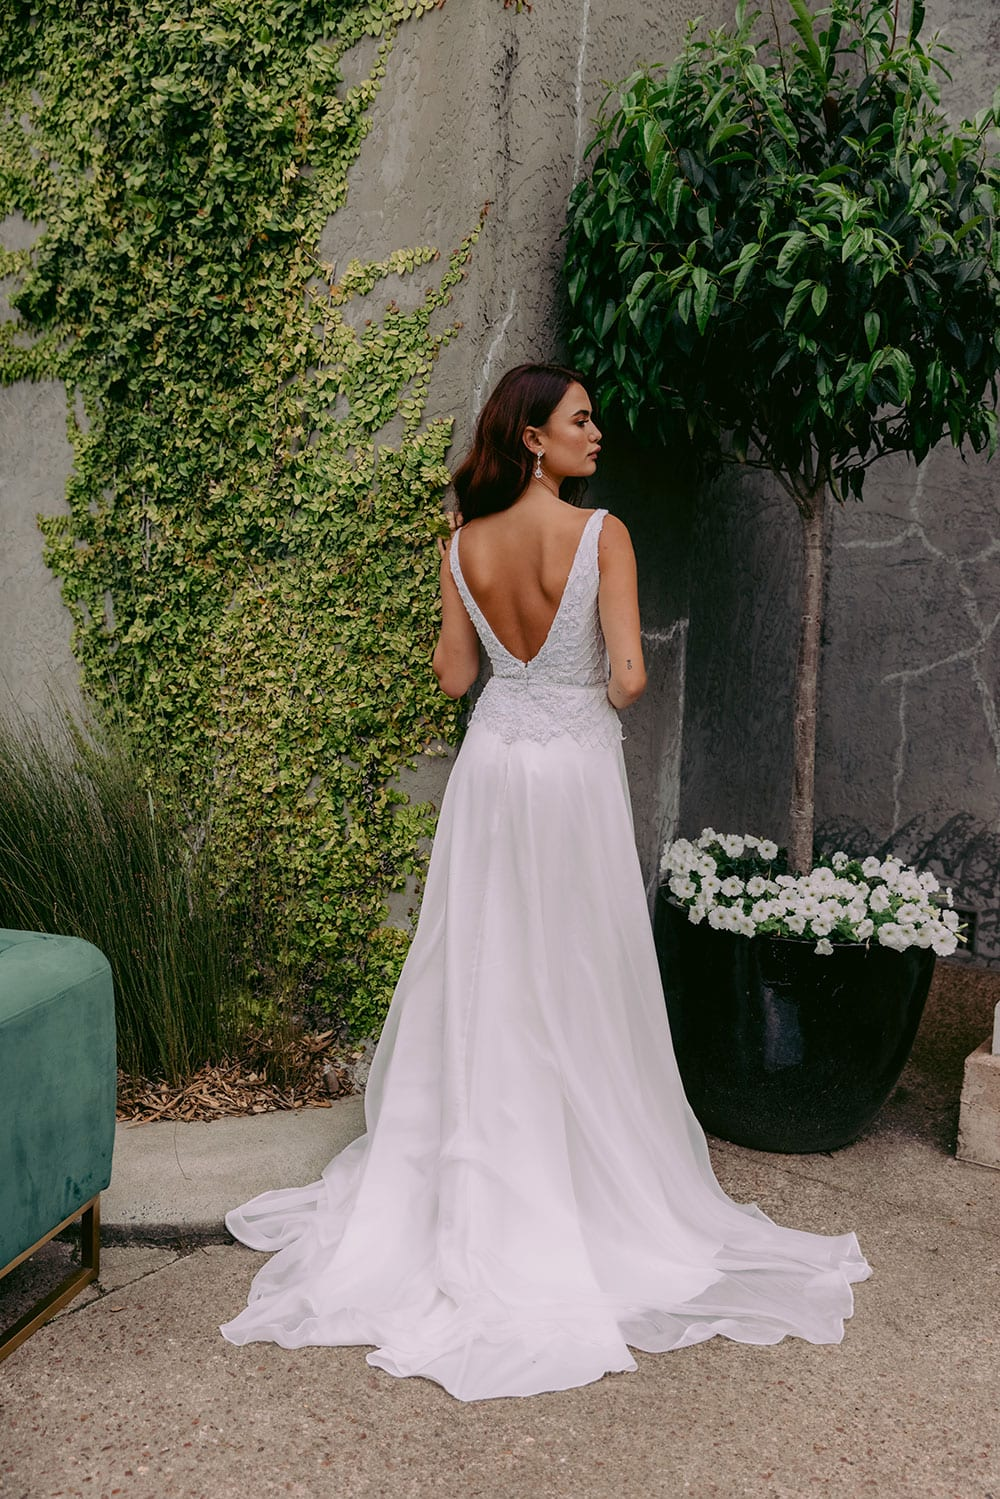 Reihana Wedding gown from Vinka Design - This stunning wedding dress features beautiful hand-appliqued beaded lace, a V-shaped neckline and low V-shaped back. The skirt is the epitome of elegance in dreamy silk chiffon, with an optional split. Model wearing gown showing full length of back, outside heritage building.